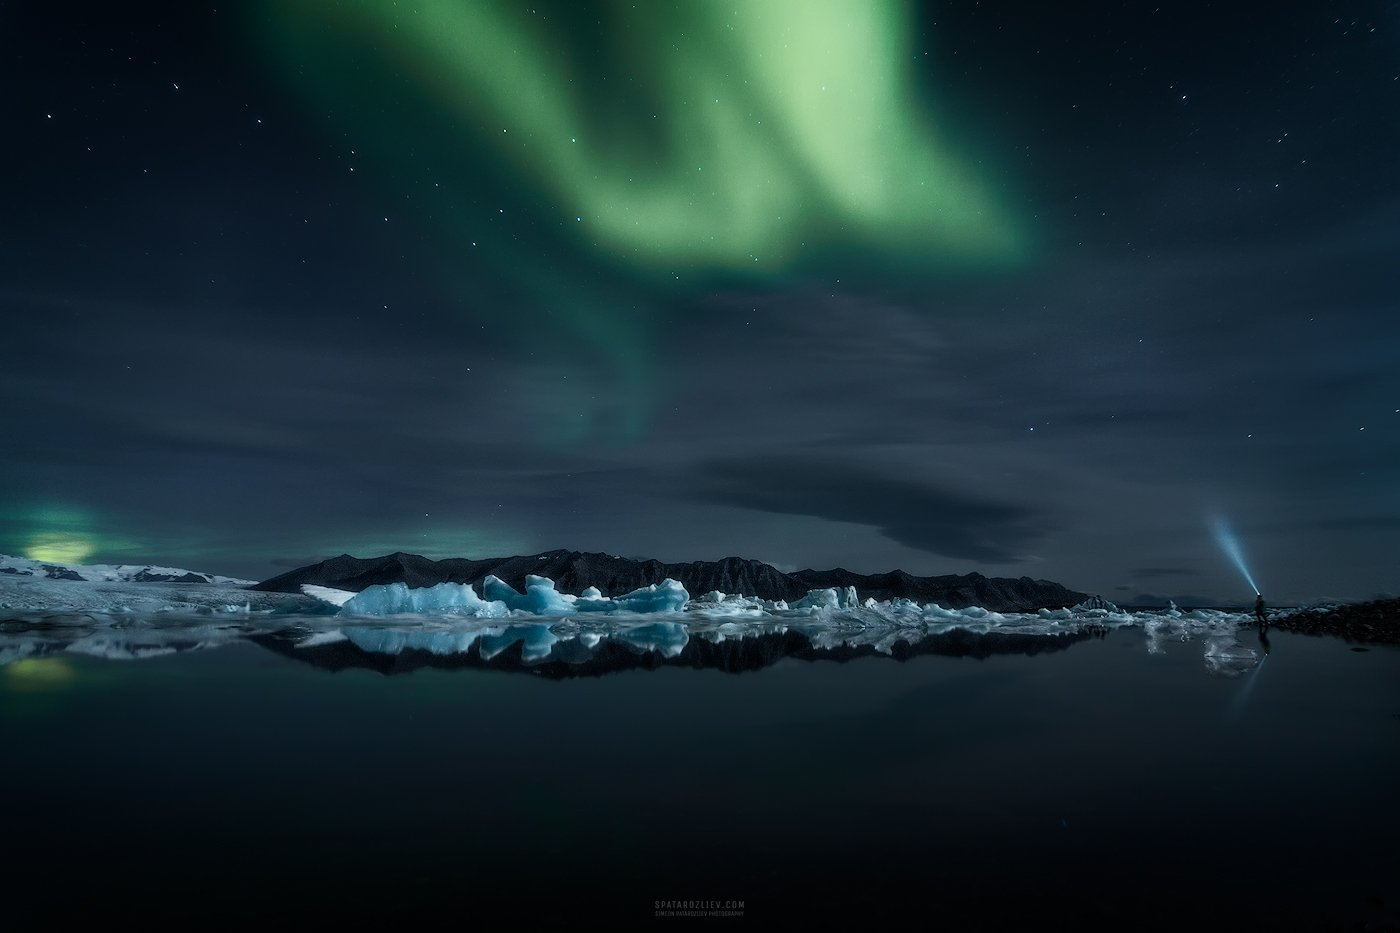 iceland, travel, glacier, lagoon, ice, iceberg, night, sky, northern lights, aurora borealis, Симеон Патарозлиев